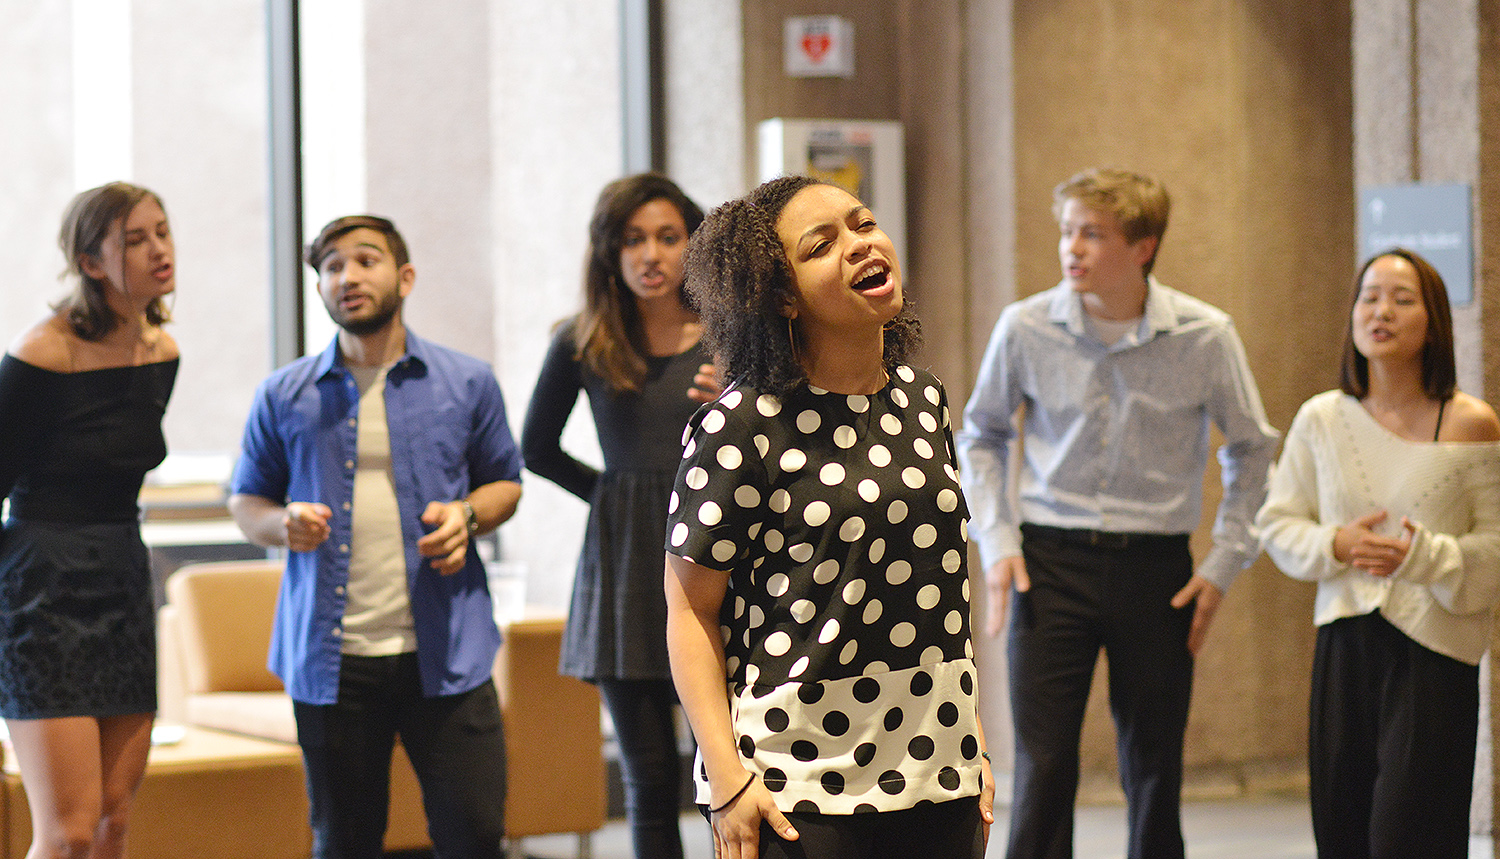 As part of WesFest, multiple a cappella groups performed at Exley Science Center. Wesleyan has more than a dozen a cappella groups.As part of WesFest, multiple a cappella groups performed at Exley Science Center. Wesleyan has more than a dozen a cappella groups.